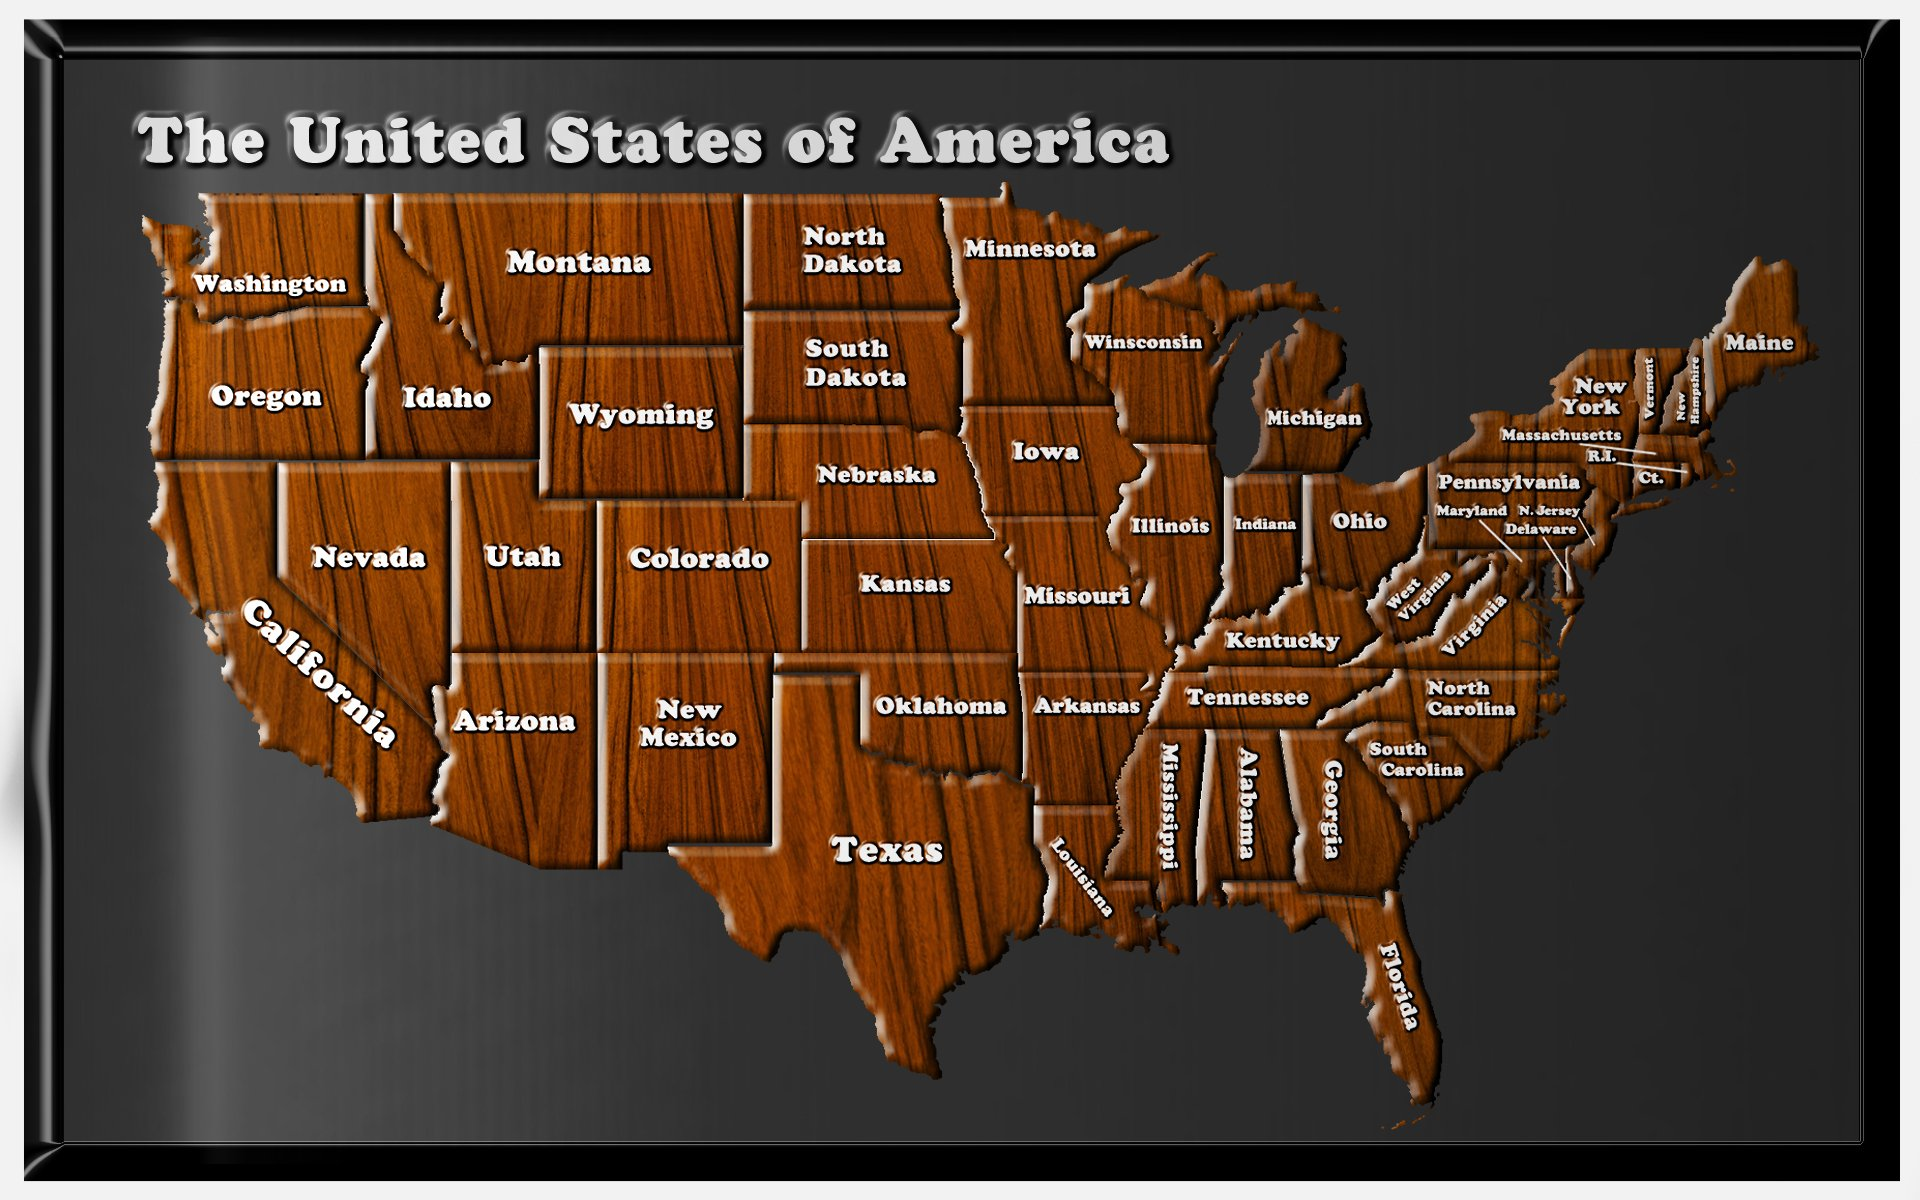 Wood Grain Us Usa America States Map Maps Patriotic Wallpaper | 1920x1200 |  634988 | WallpaperUP